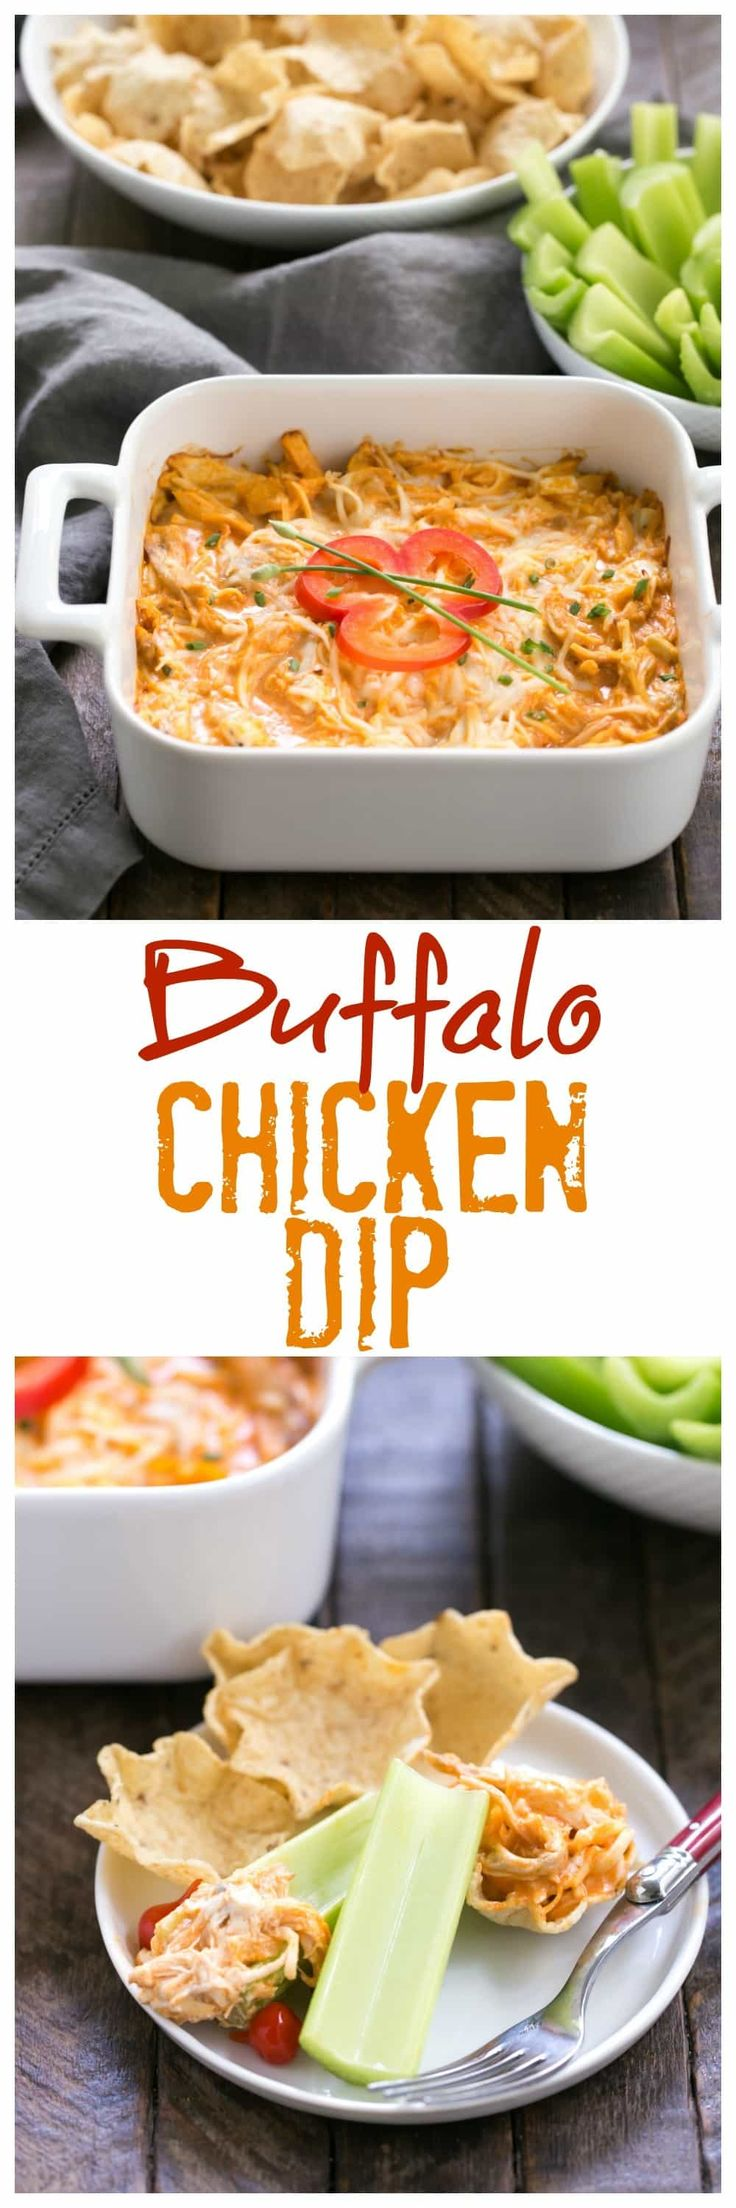 Buffalo Chicken Dip Recipe | A cheesy, spicy chicken dip with the flavors of buffalo chicken wings! @lizzydo